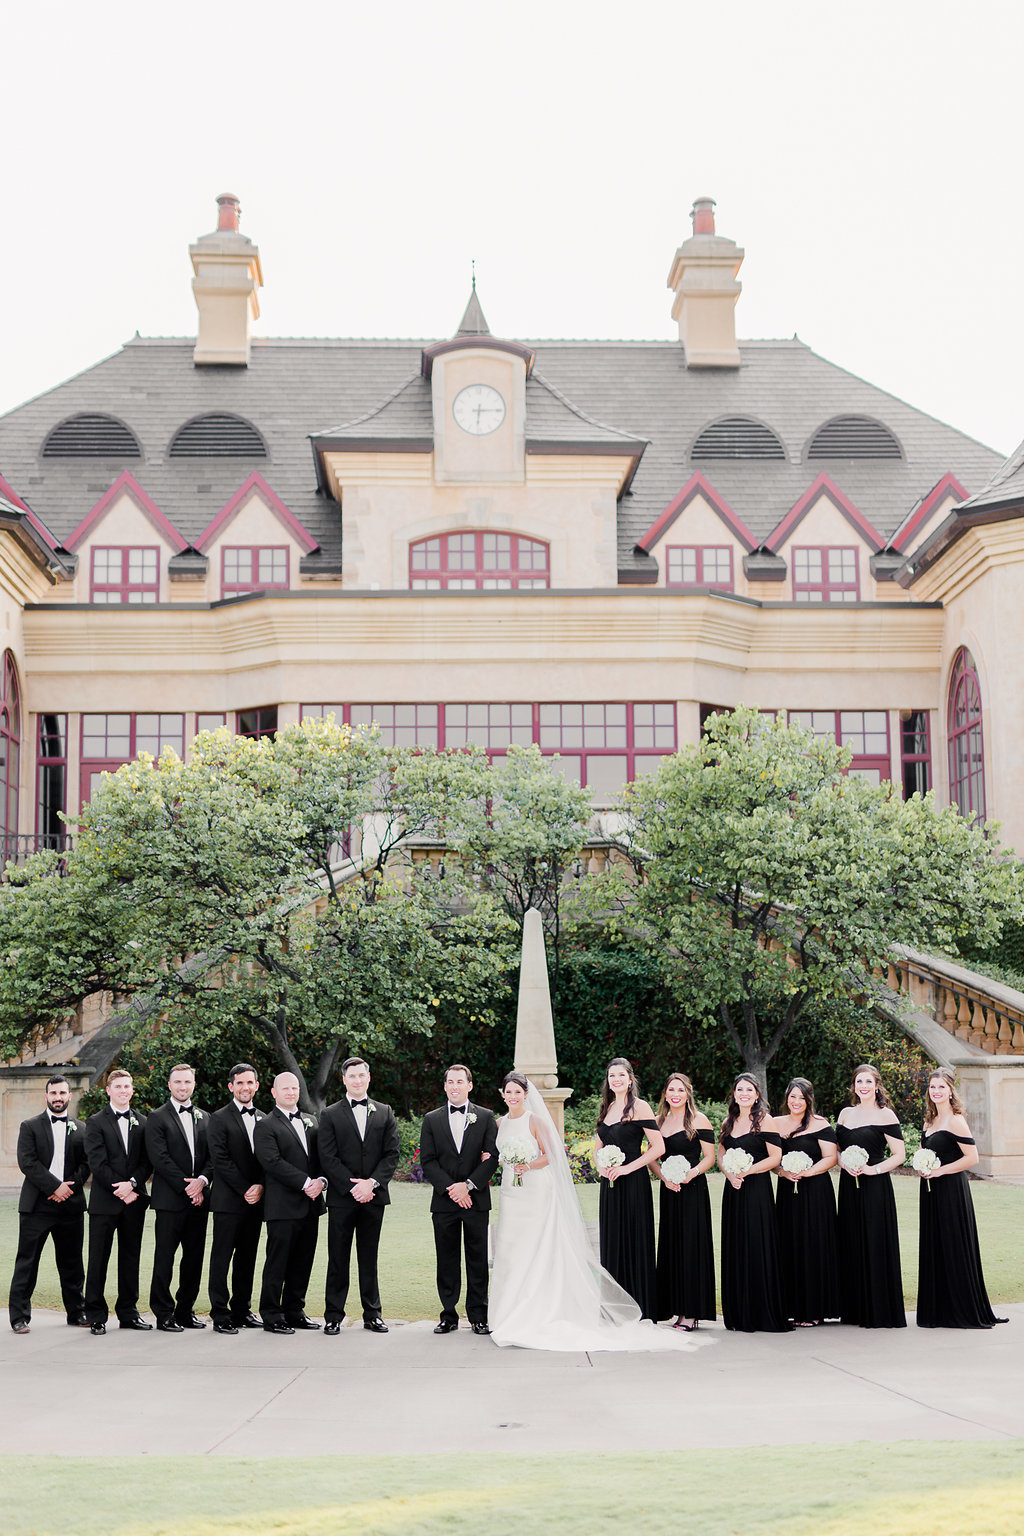 Gallardia-Oklahoma-City-Oklahoma-Wedding-Photographer-Holly-Felts-Photography-Photos-272